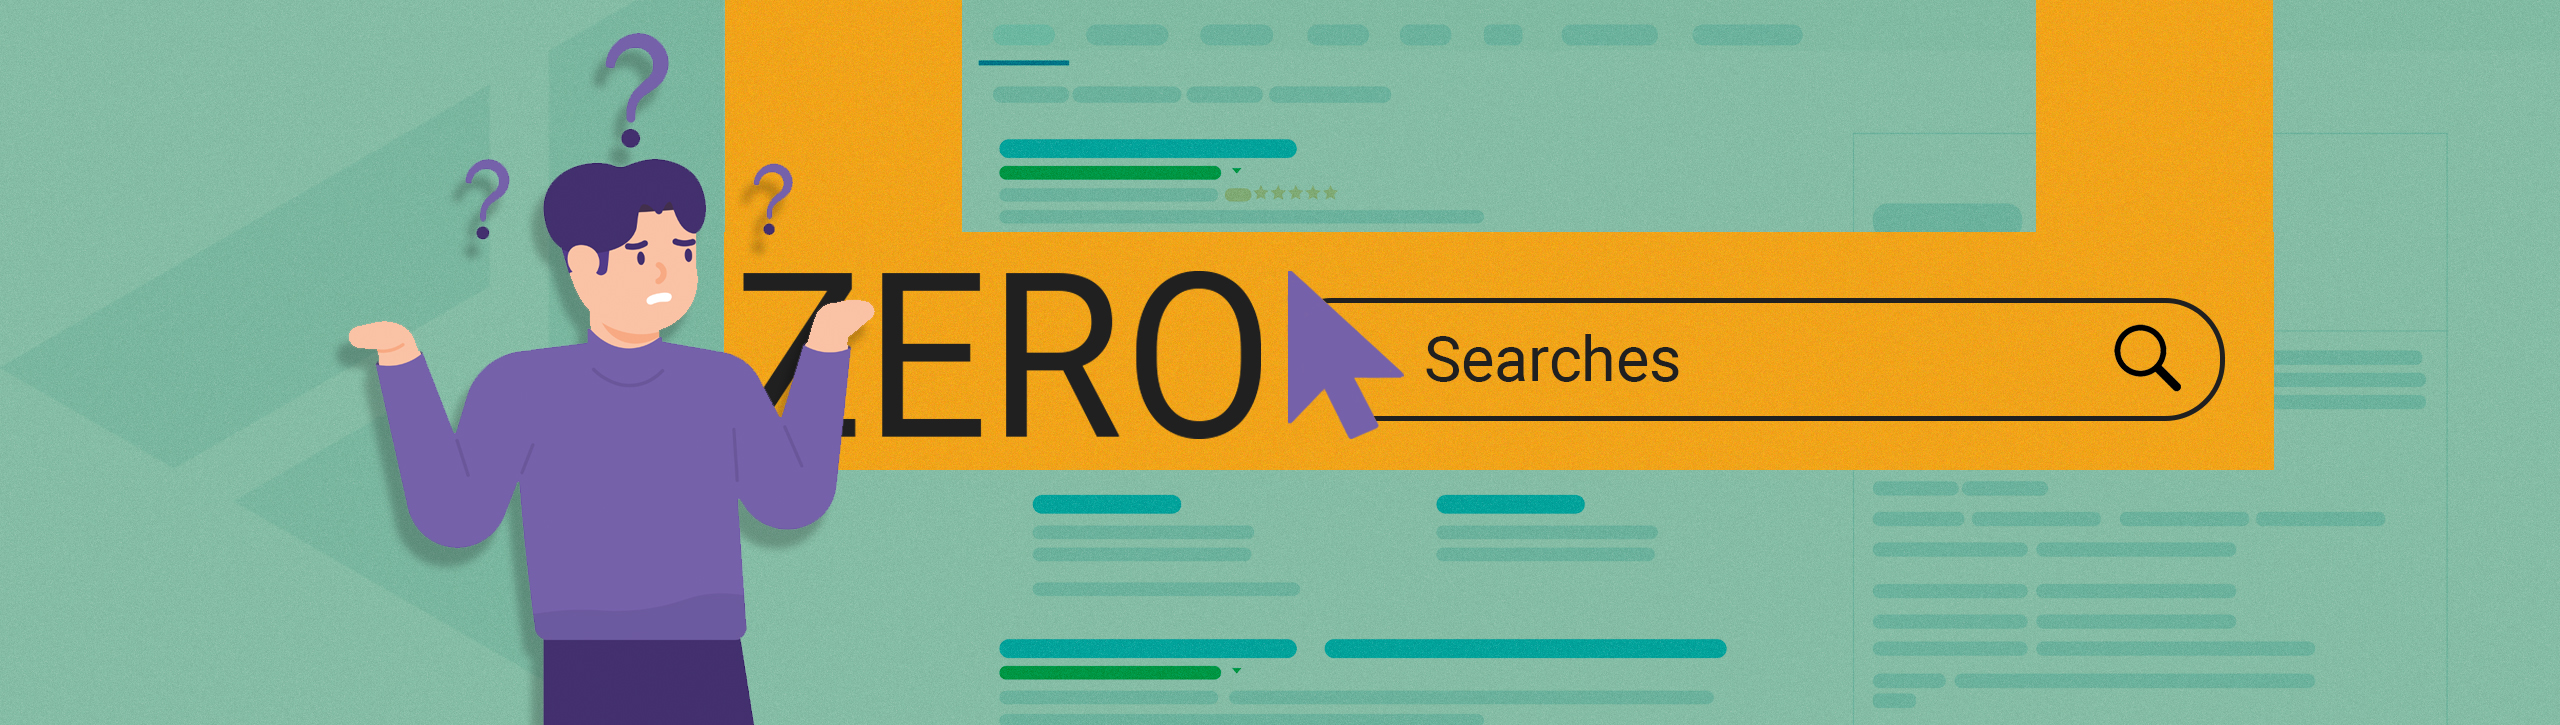 What Are Zero-Click Searches and Why Should You Care?